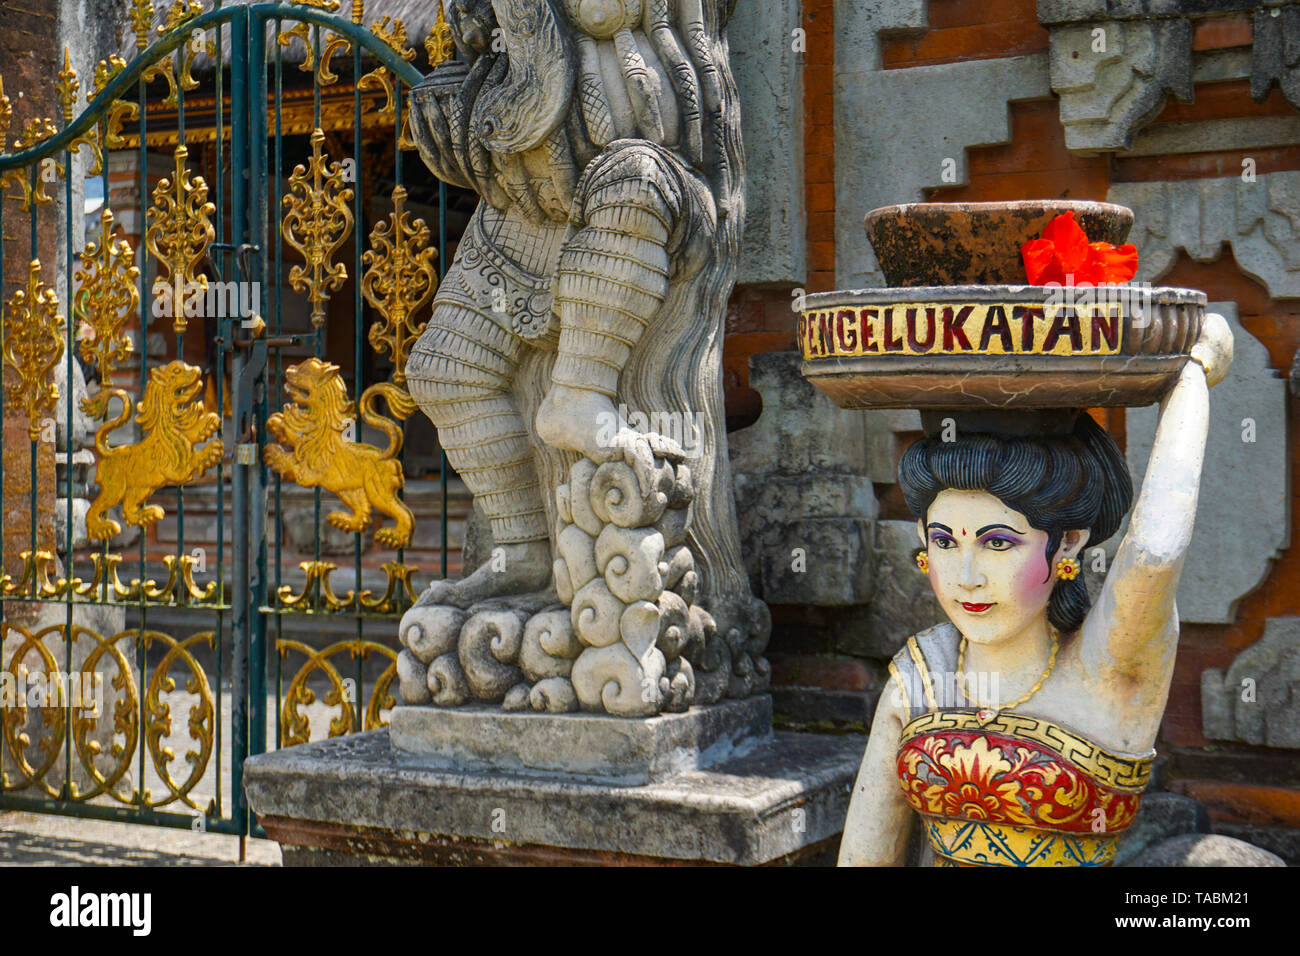 Balinese woman statue holding on his head offerings and gifts to the gods at the Balinese Temple, Bali, Indonesia, 10.08.2018 - Stock Image